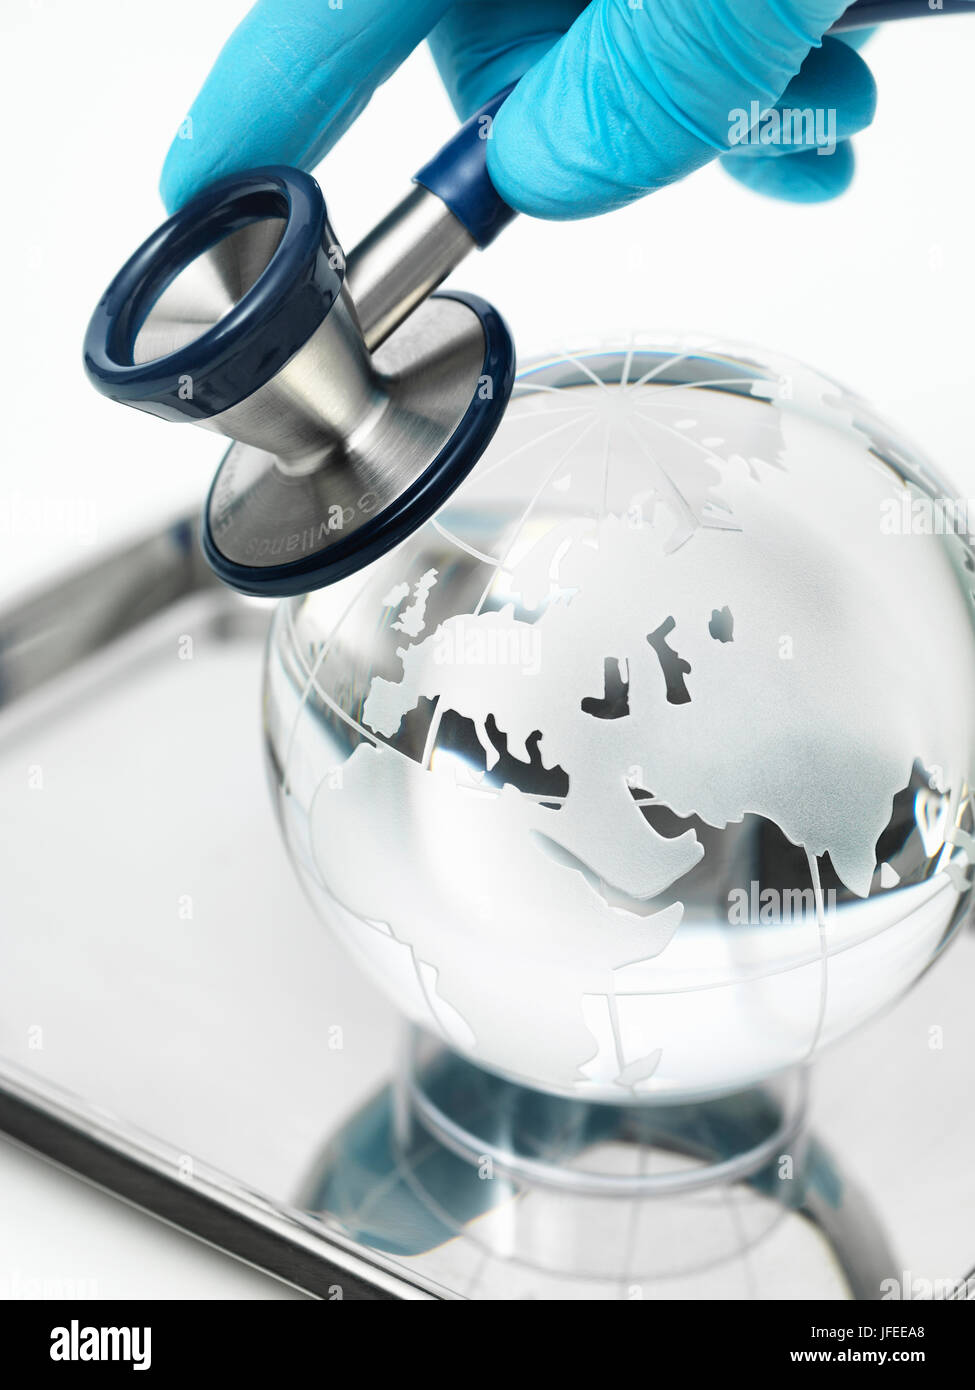 Global healthcare, conceptual image. Globe and stethoscope. - Stock Image